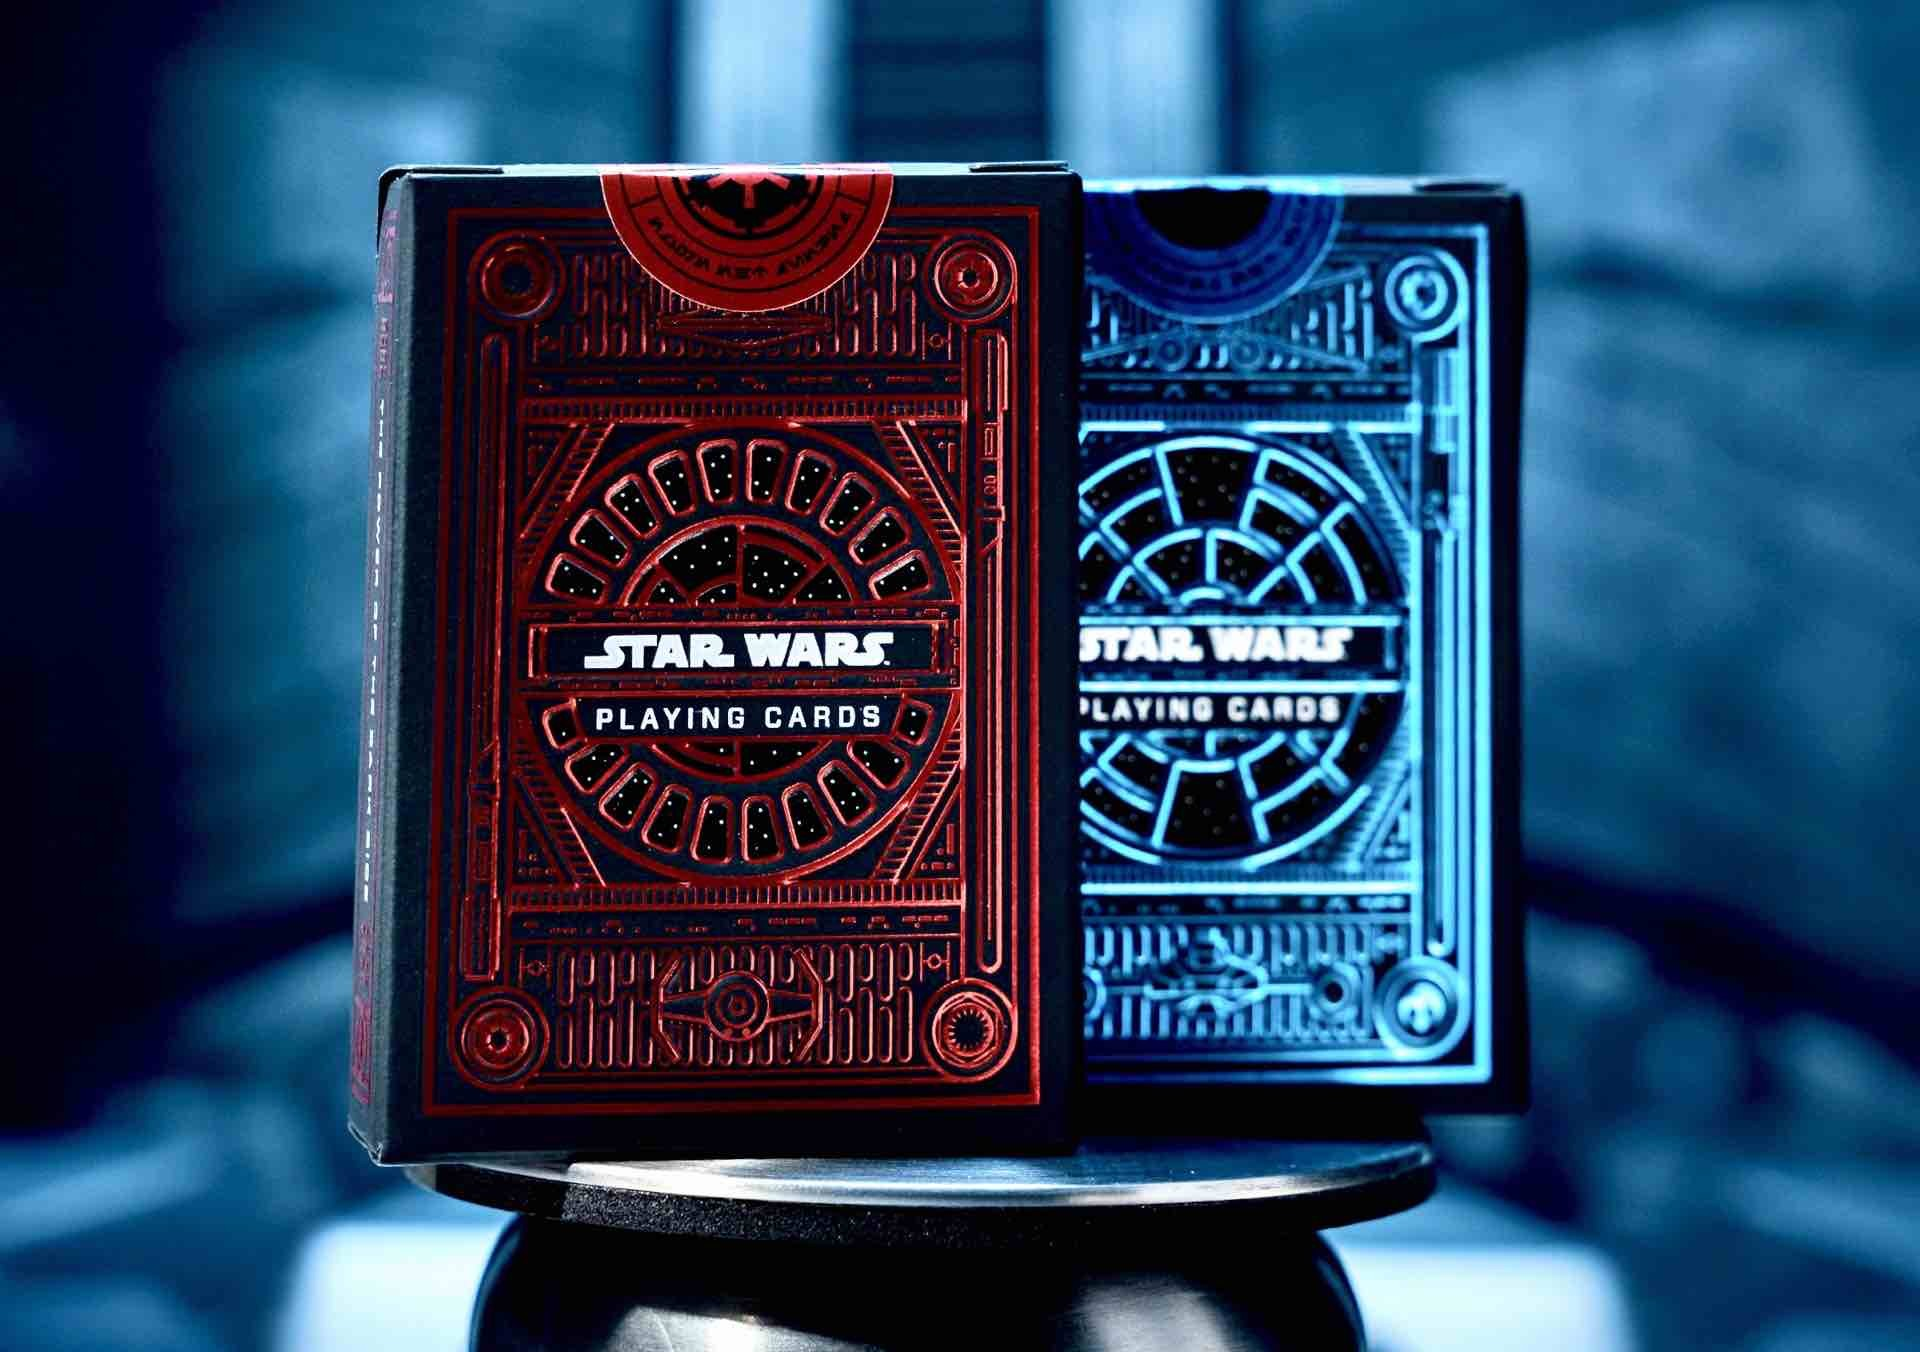 Star Wars playing cards by theory11. ($10 per single deck)